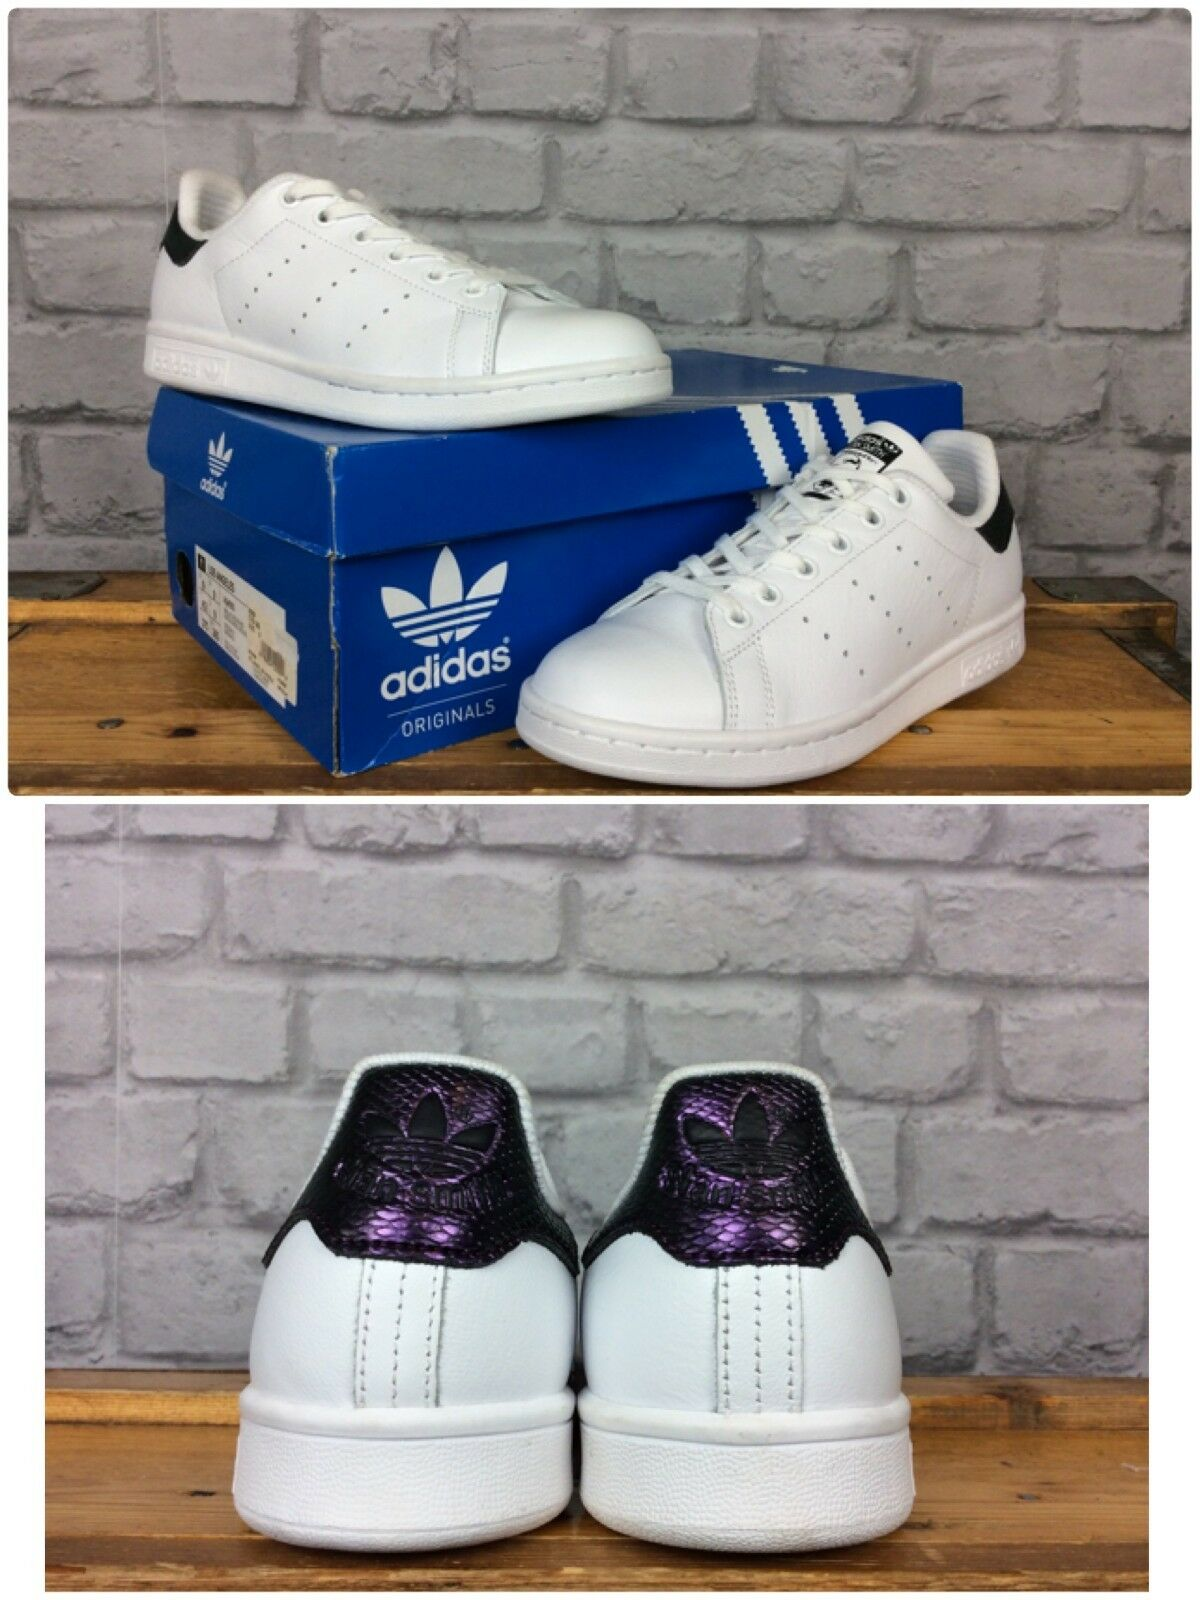 ADIDAS4 EU 36 2/3 STAN SMITH  blanc  TRAINERS PURPLE SNAKE HEEL LADIES GIRLS